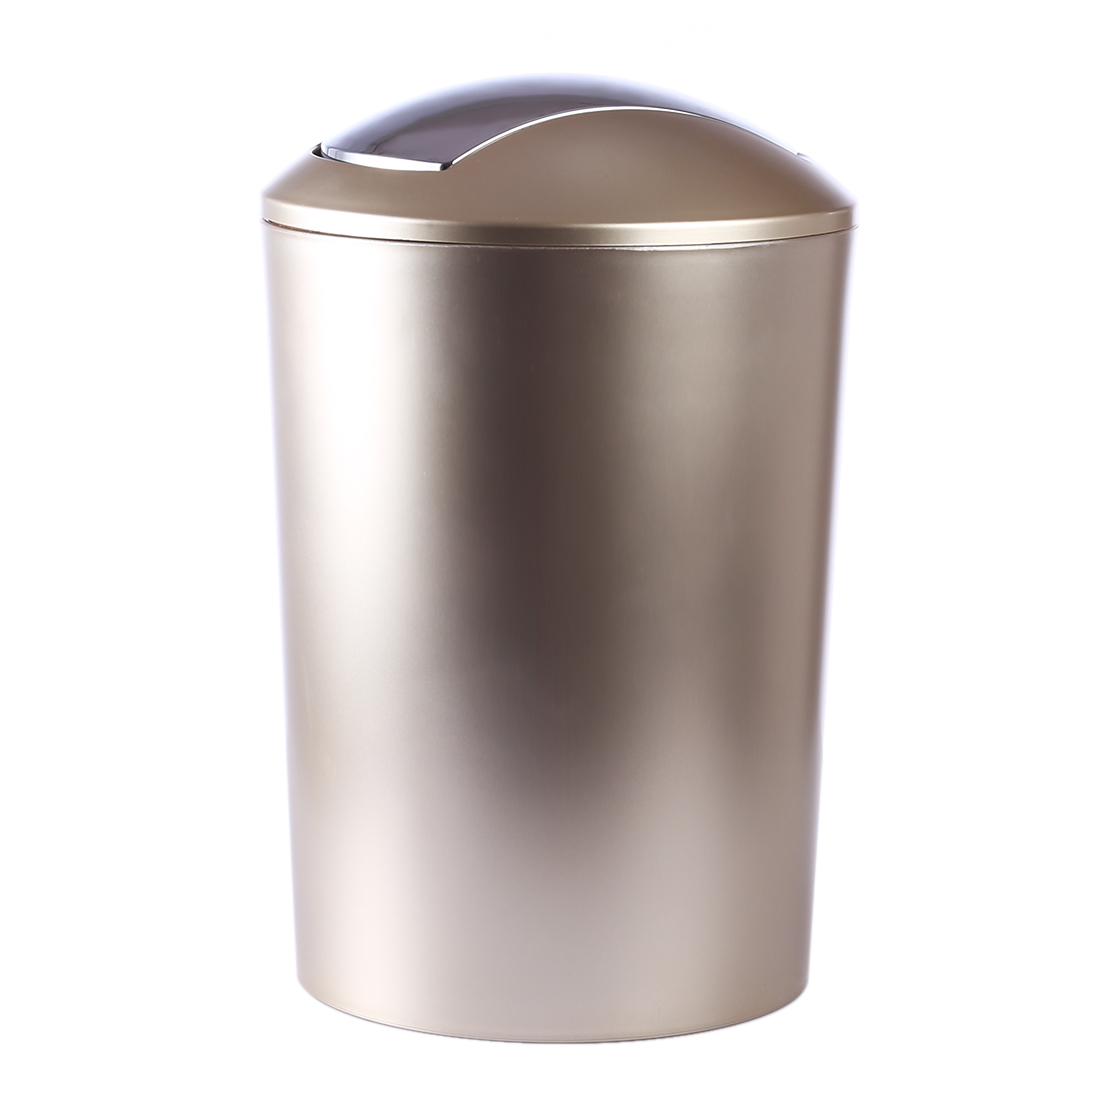 Us 1871 22 Offdrop Shipping 65l European Style Trash Garbage Can Wastebin With Lid Home Bedroom Kitchen Garbage Bins Silver In Waste Bins From